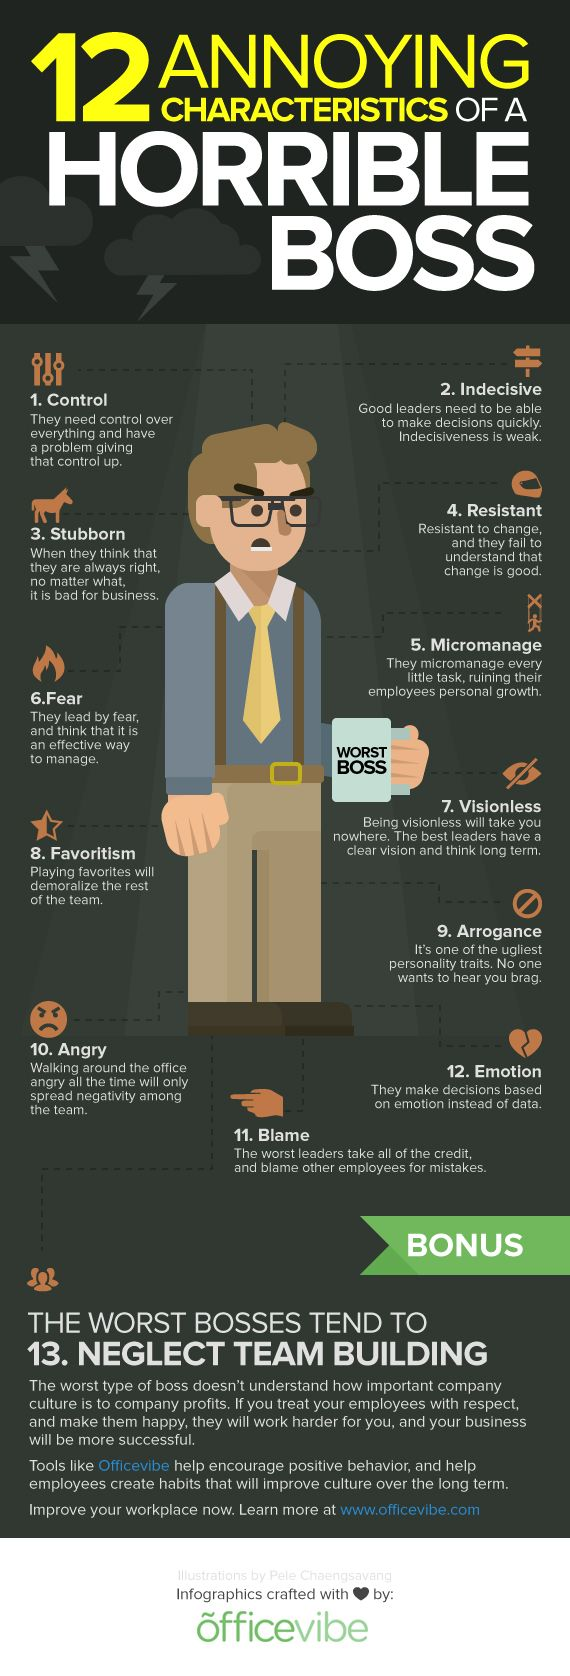 #infographic: 12 Annoying Characteristics of a Horrible #Boss. #Productivity